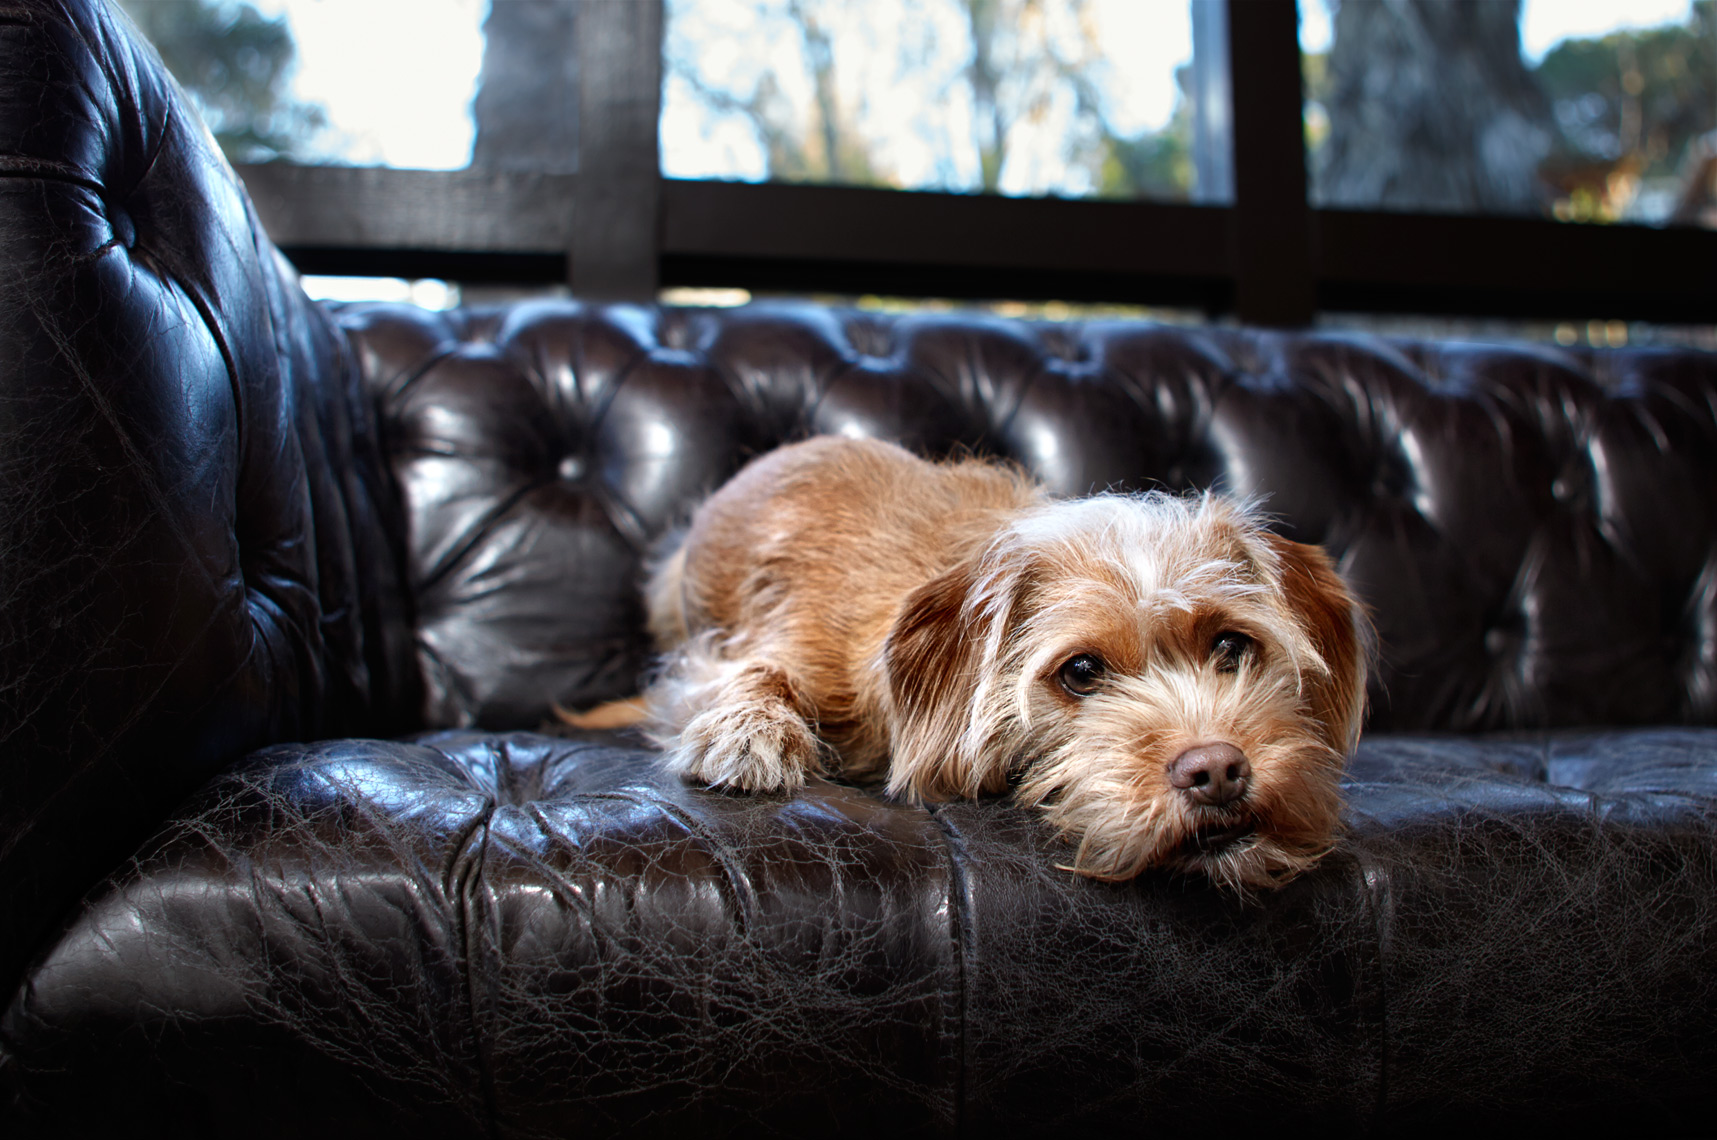 Dog on leather couch